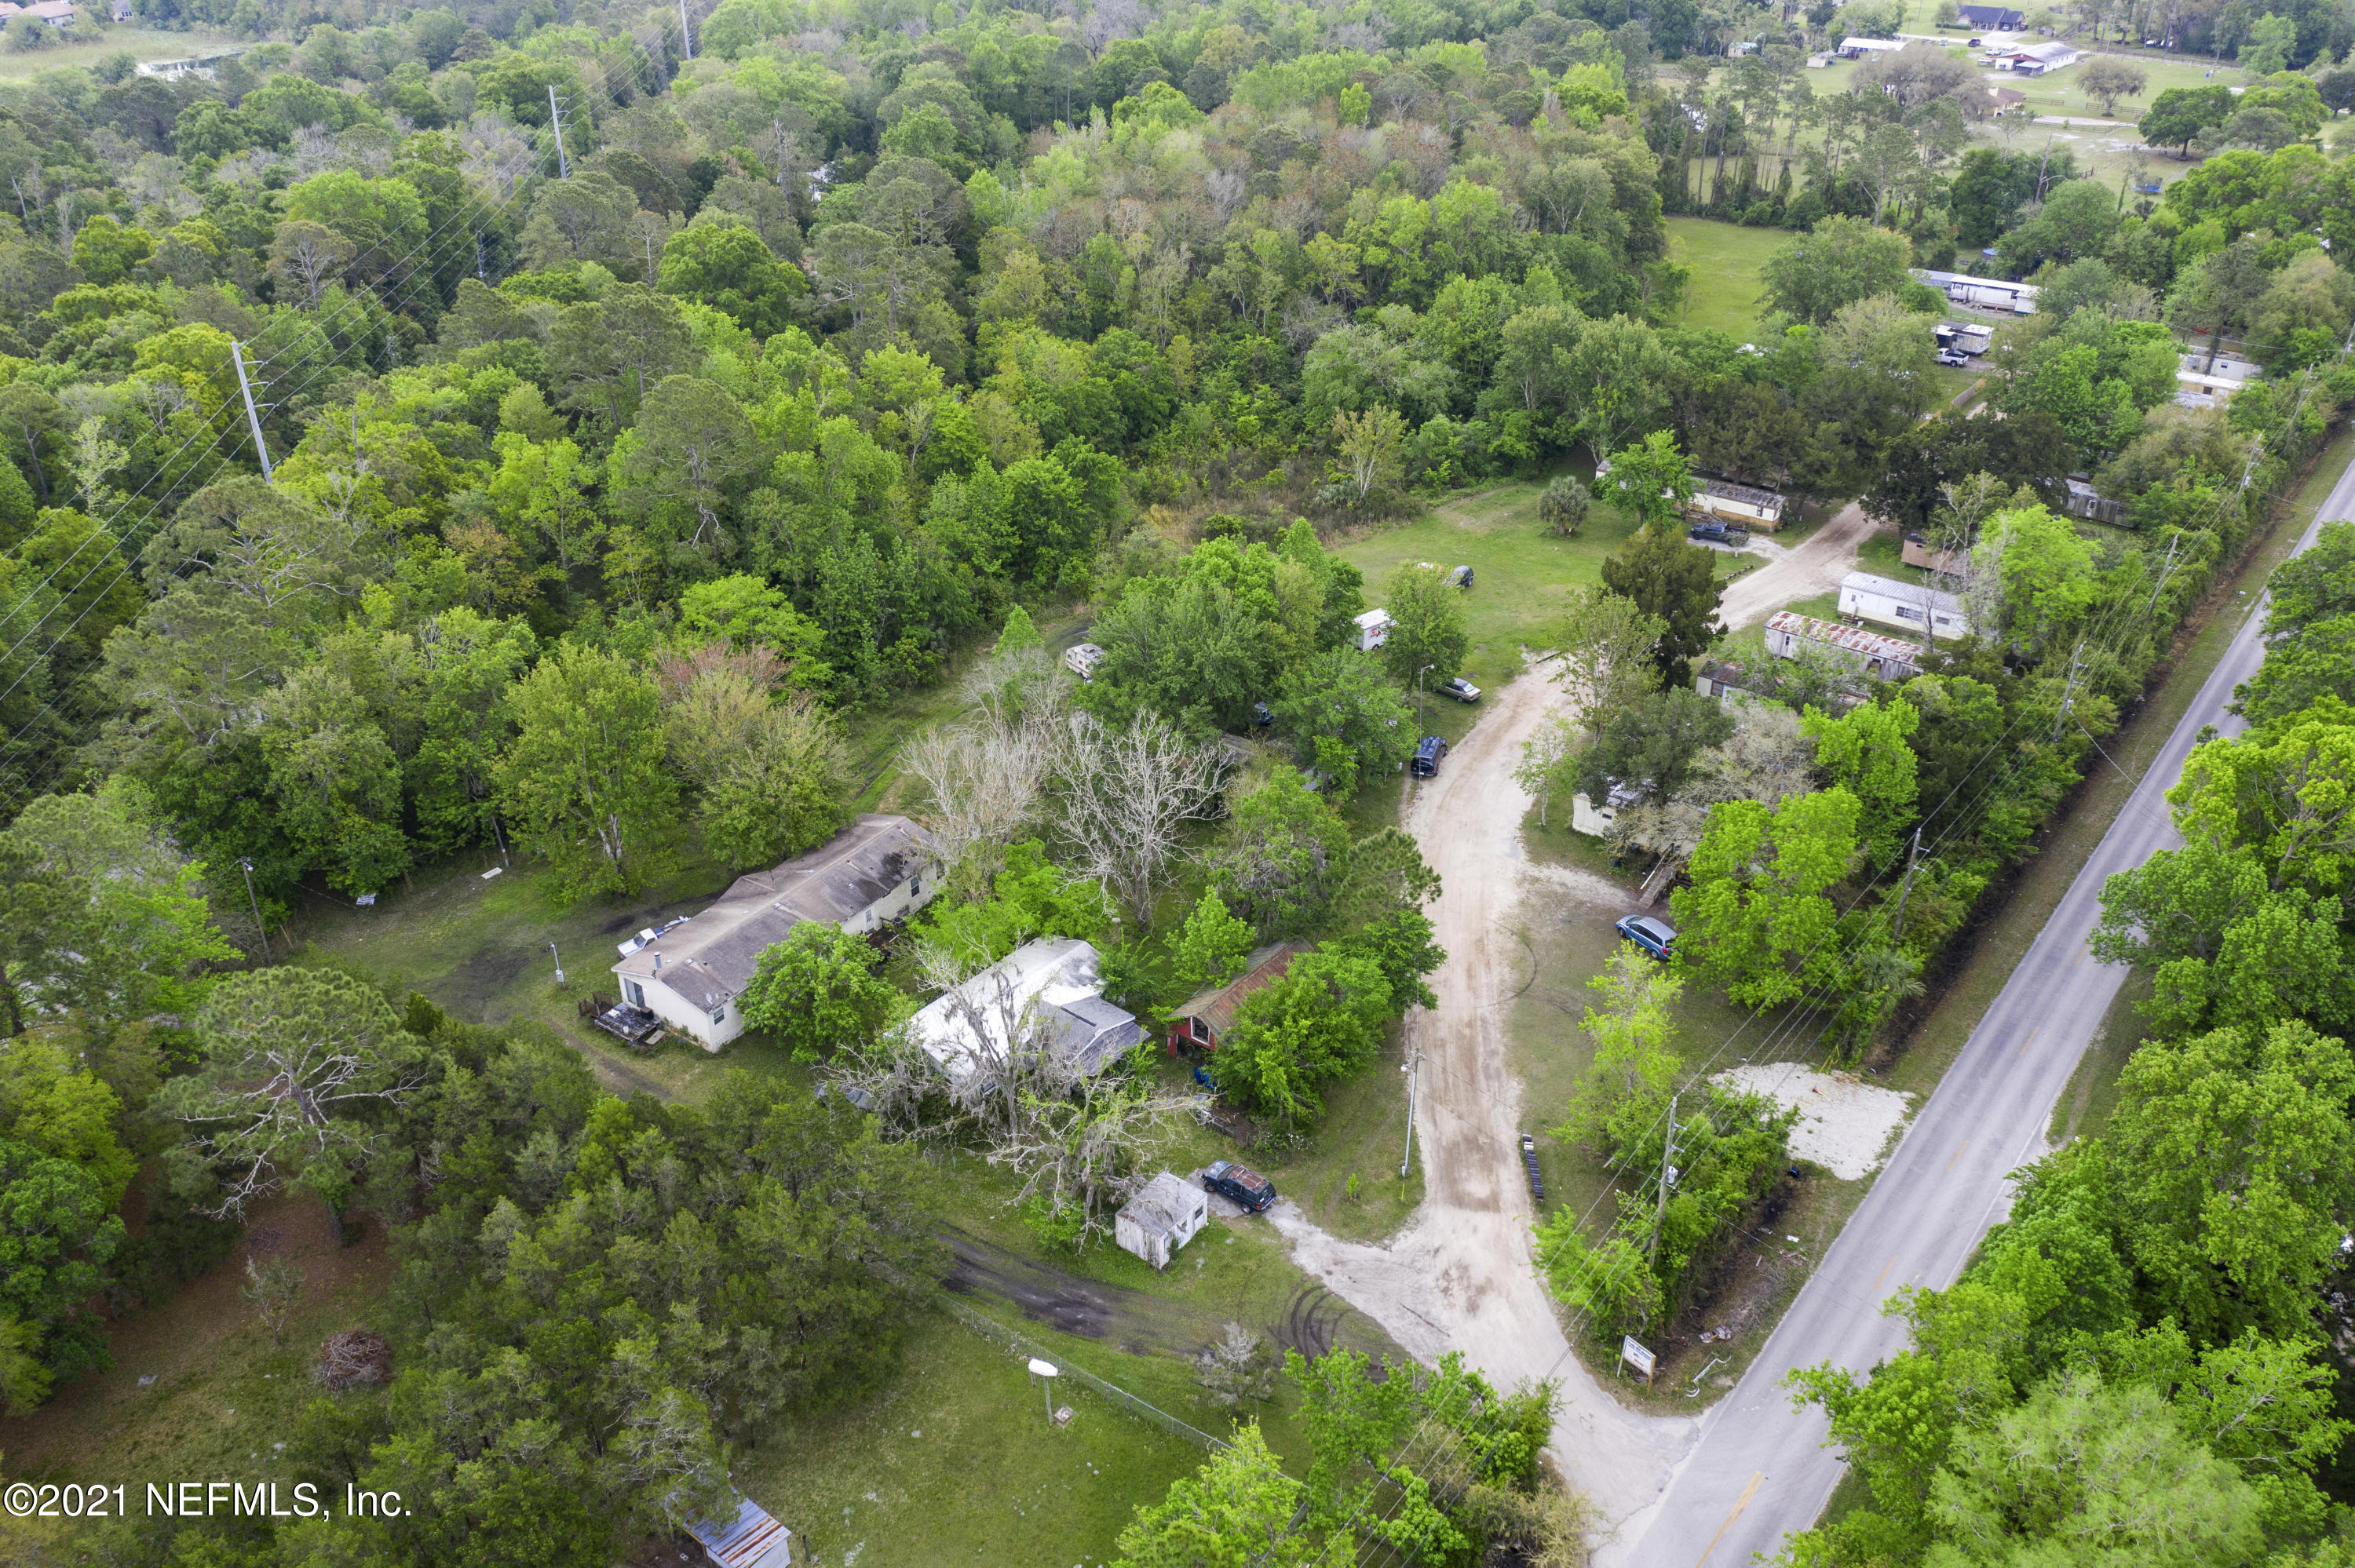 Property in Opportunity Zone! 3.873 Acre Mobile Park with 19 total lots in opportunity zone! 15 of the mobile homes are owned by the property owner. One unit is being used as a storage shed and 3 other units are being leased out for lot rent. All units have separate electric meters. All land of the 3.873 acres is high and dry. Inquire for more information. The land can be rezoned and the new owner can speak with the county about redeveloping. This property is being offered separately or in conjunction with the adjacent parcel at 2021 Four Mile Rd.